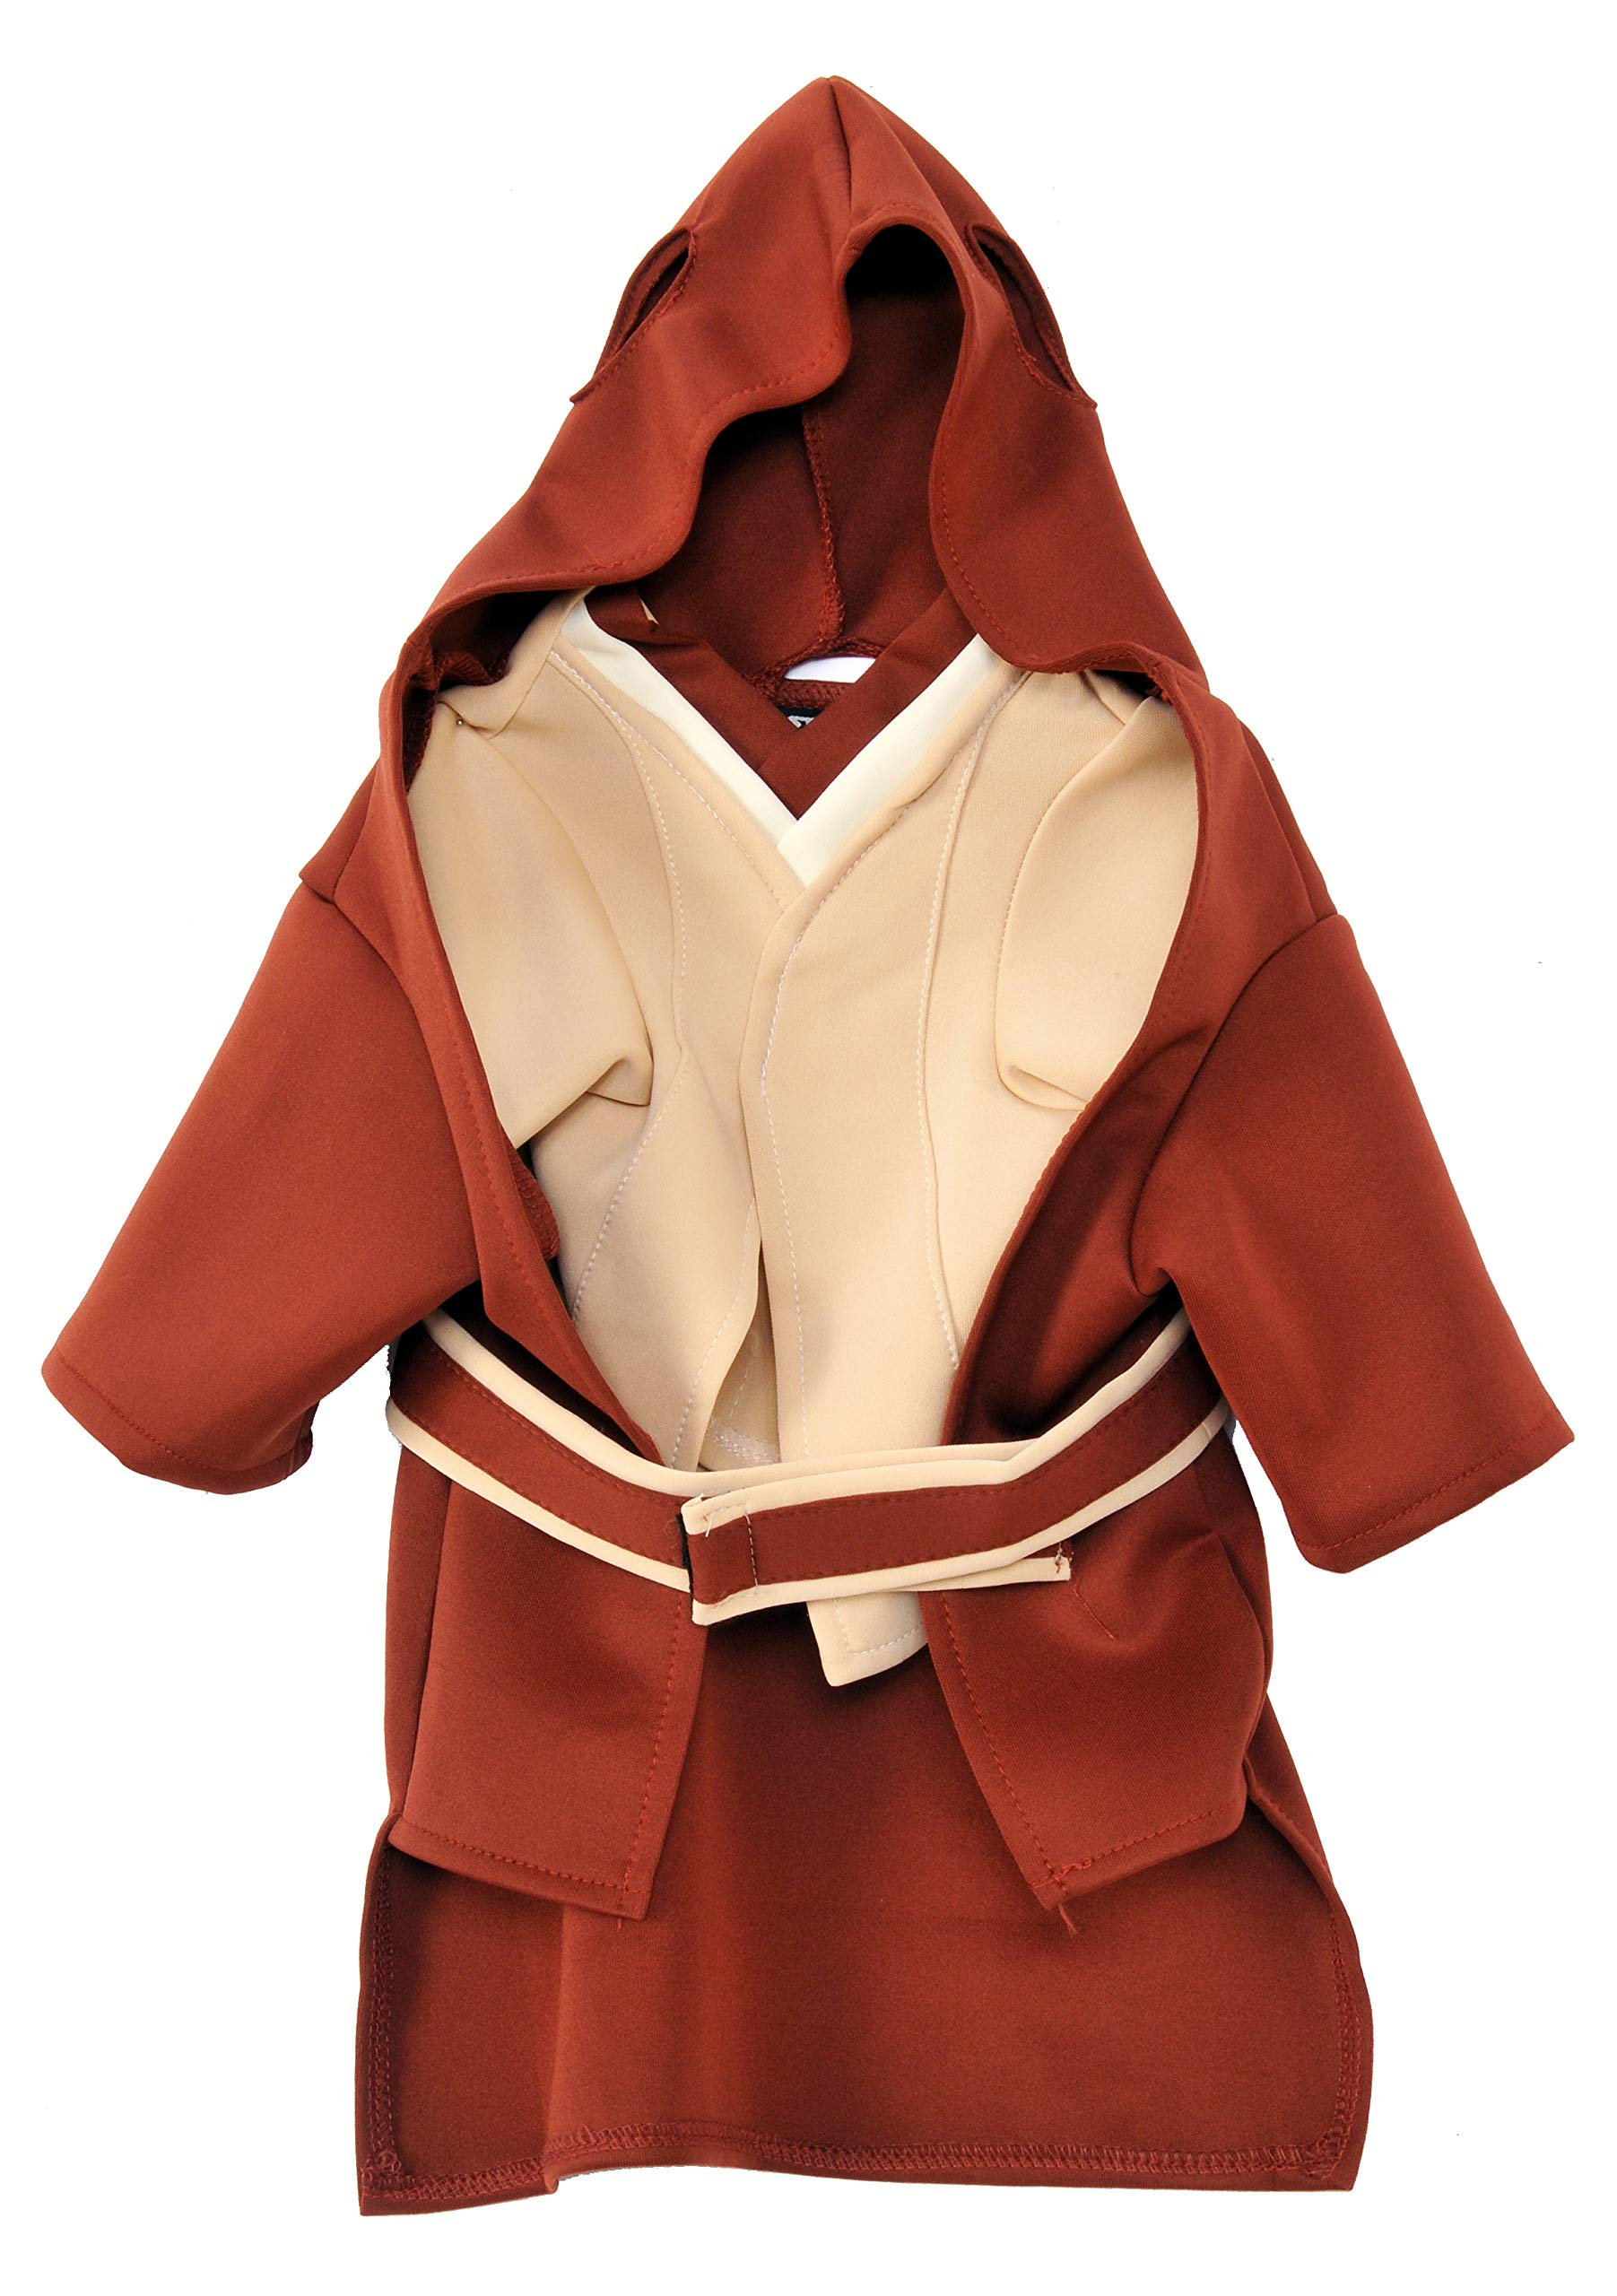 Rubie's Star Wars Classic Jedi Robe Pet Costume, Large by Rubie's (Image #2)